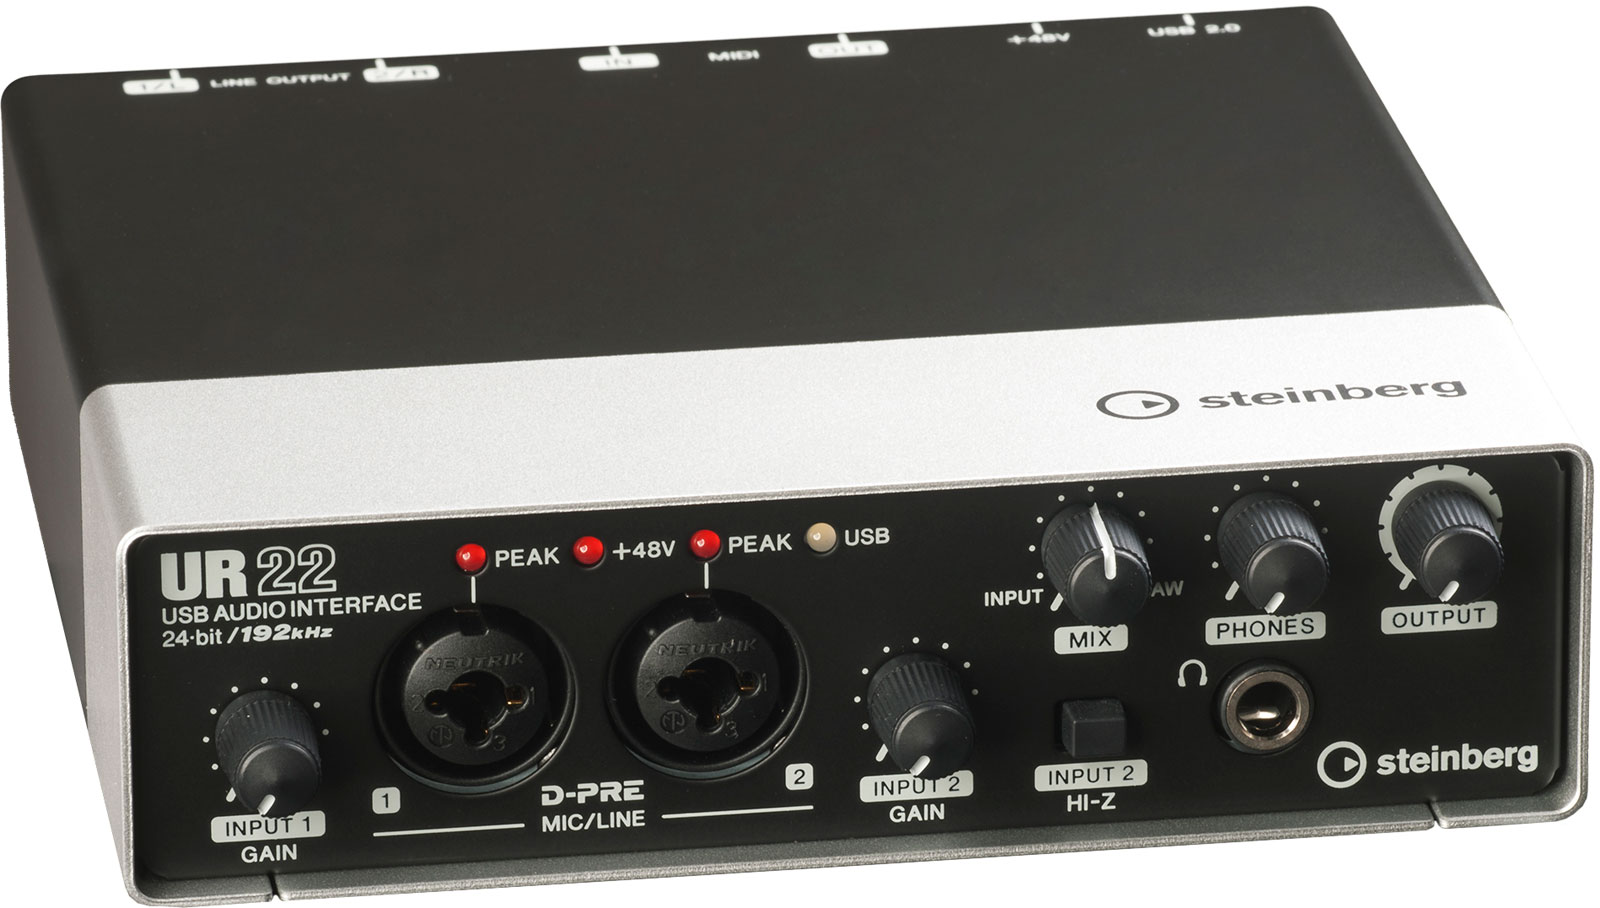 Steinberg UR22 USB Audio Interface Review